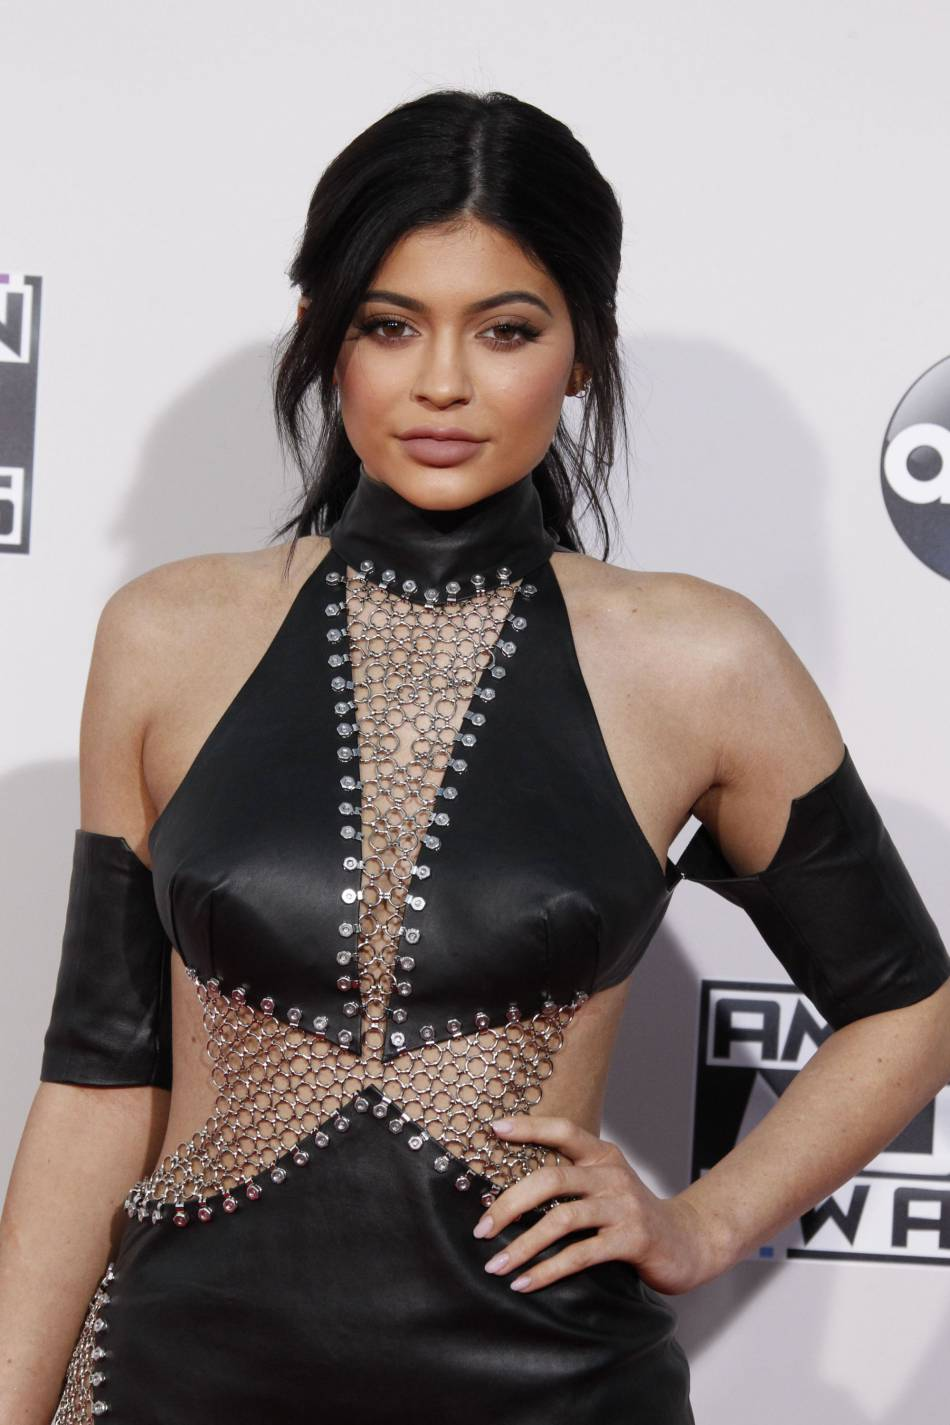 photo Kylie jenner 4 hot pics